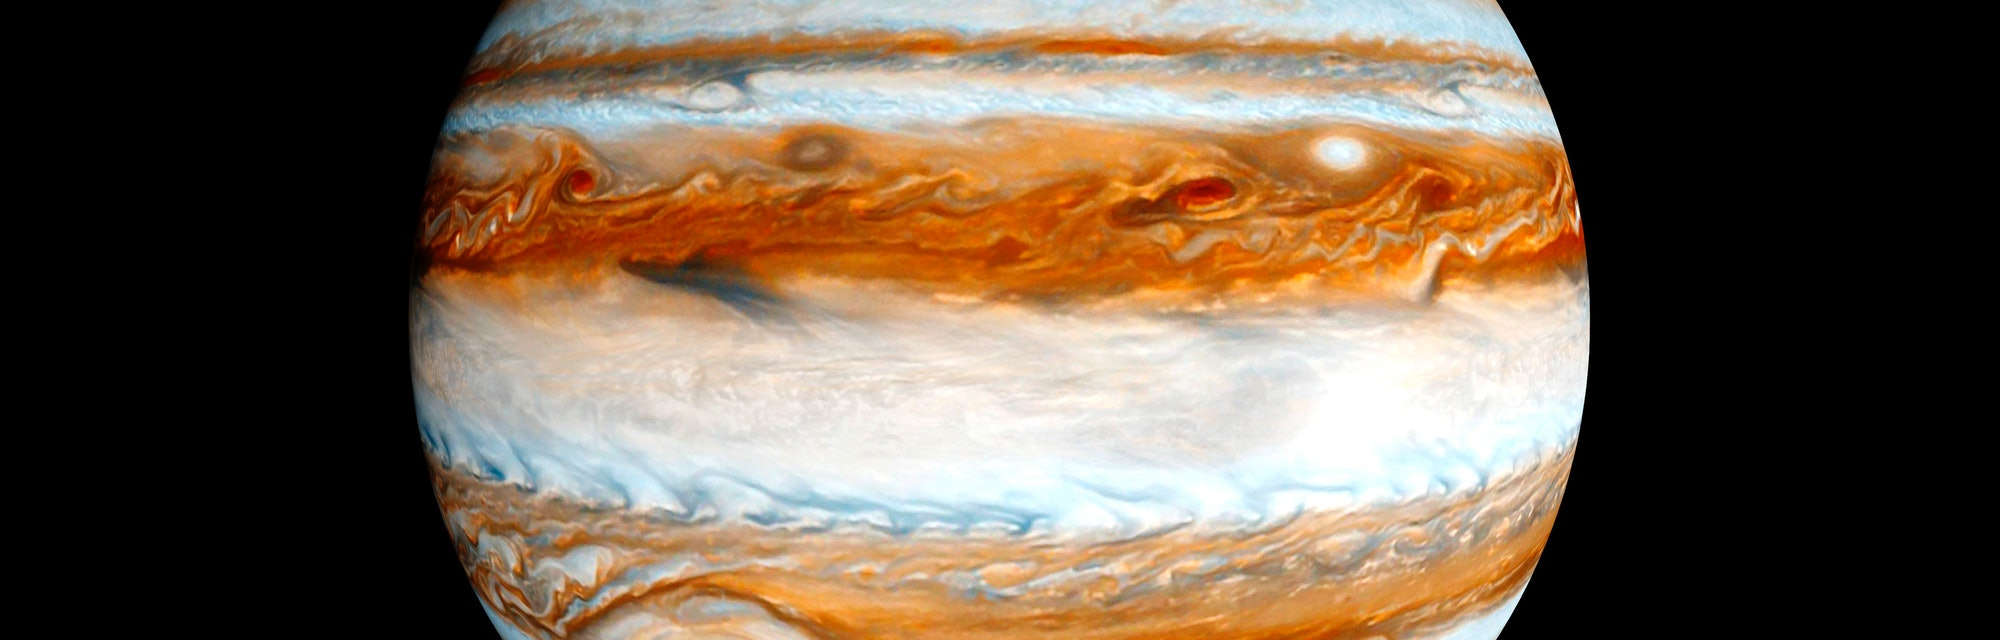 Jupiter gas giant slowly orbiting in deep space concept